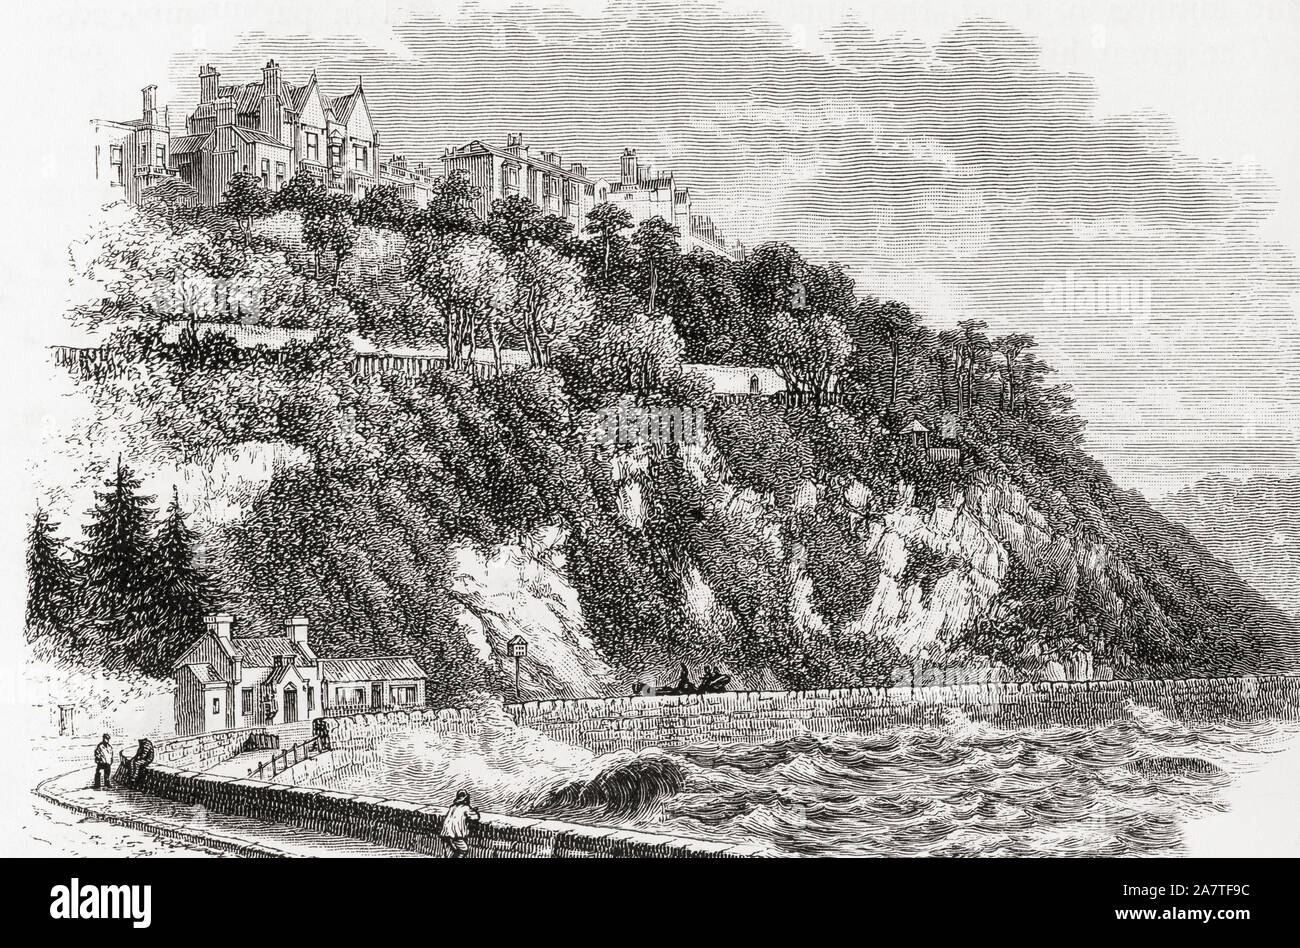 Torquay, Devon, England, seen here in the 19th century.   From English Pictures, published 1890. Stock Photo